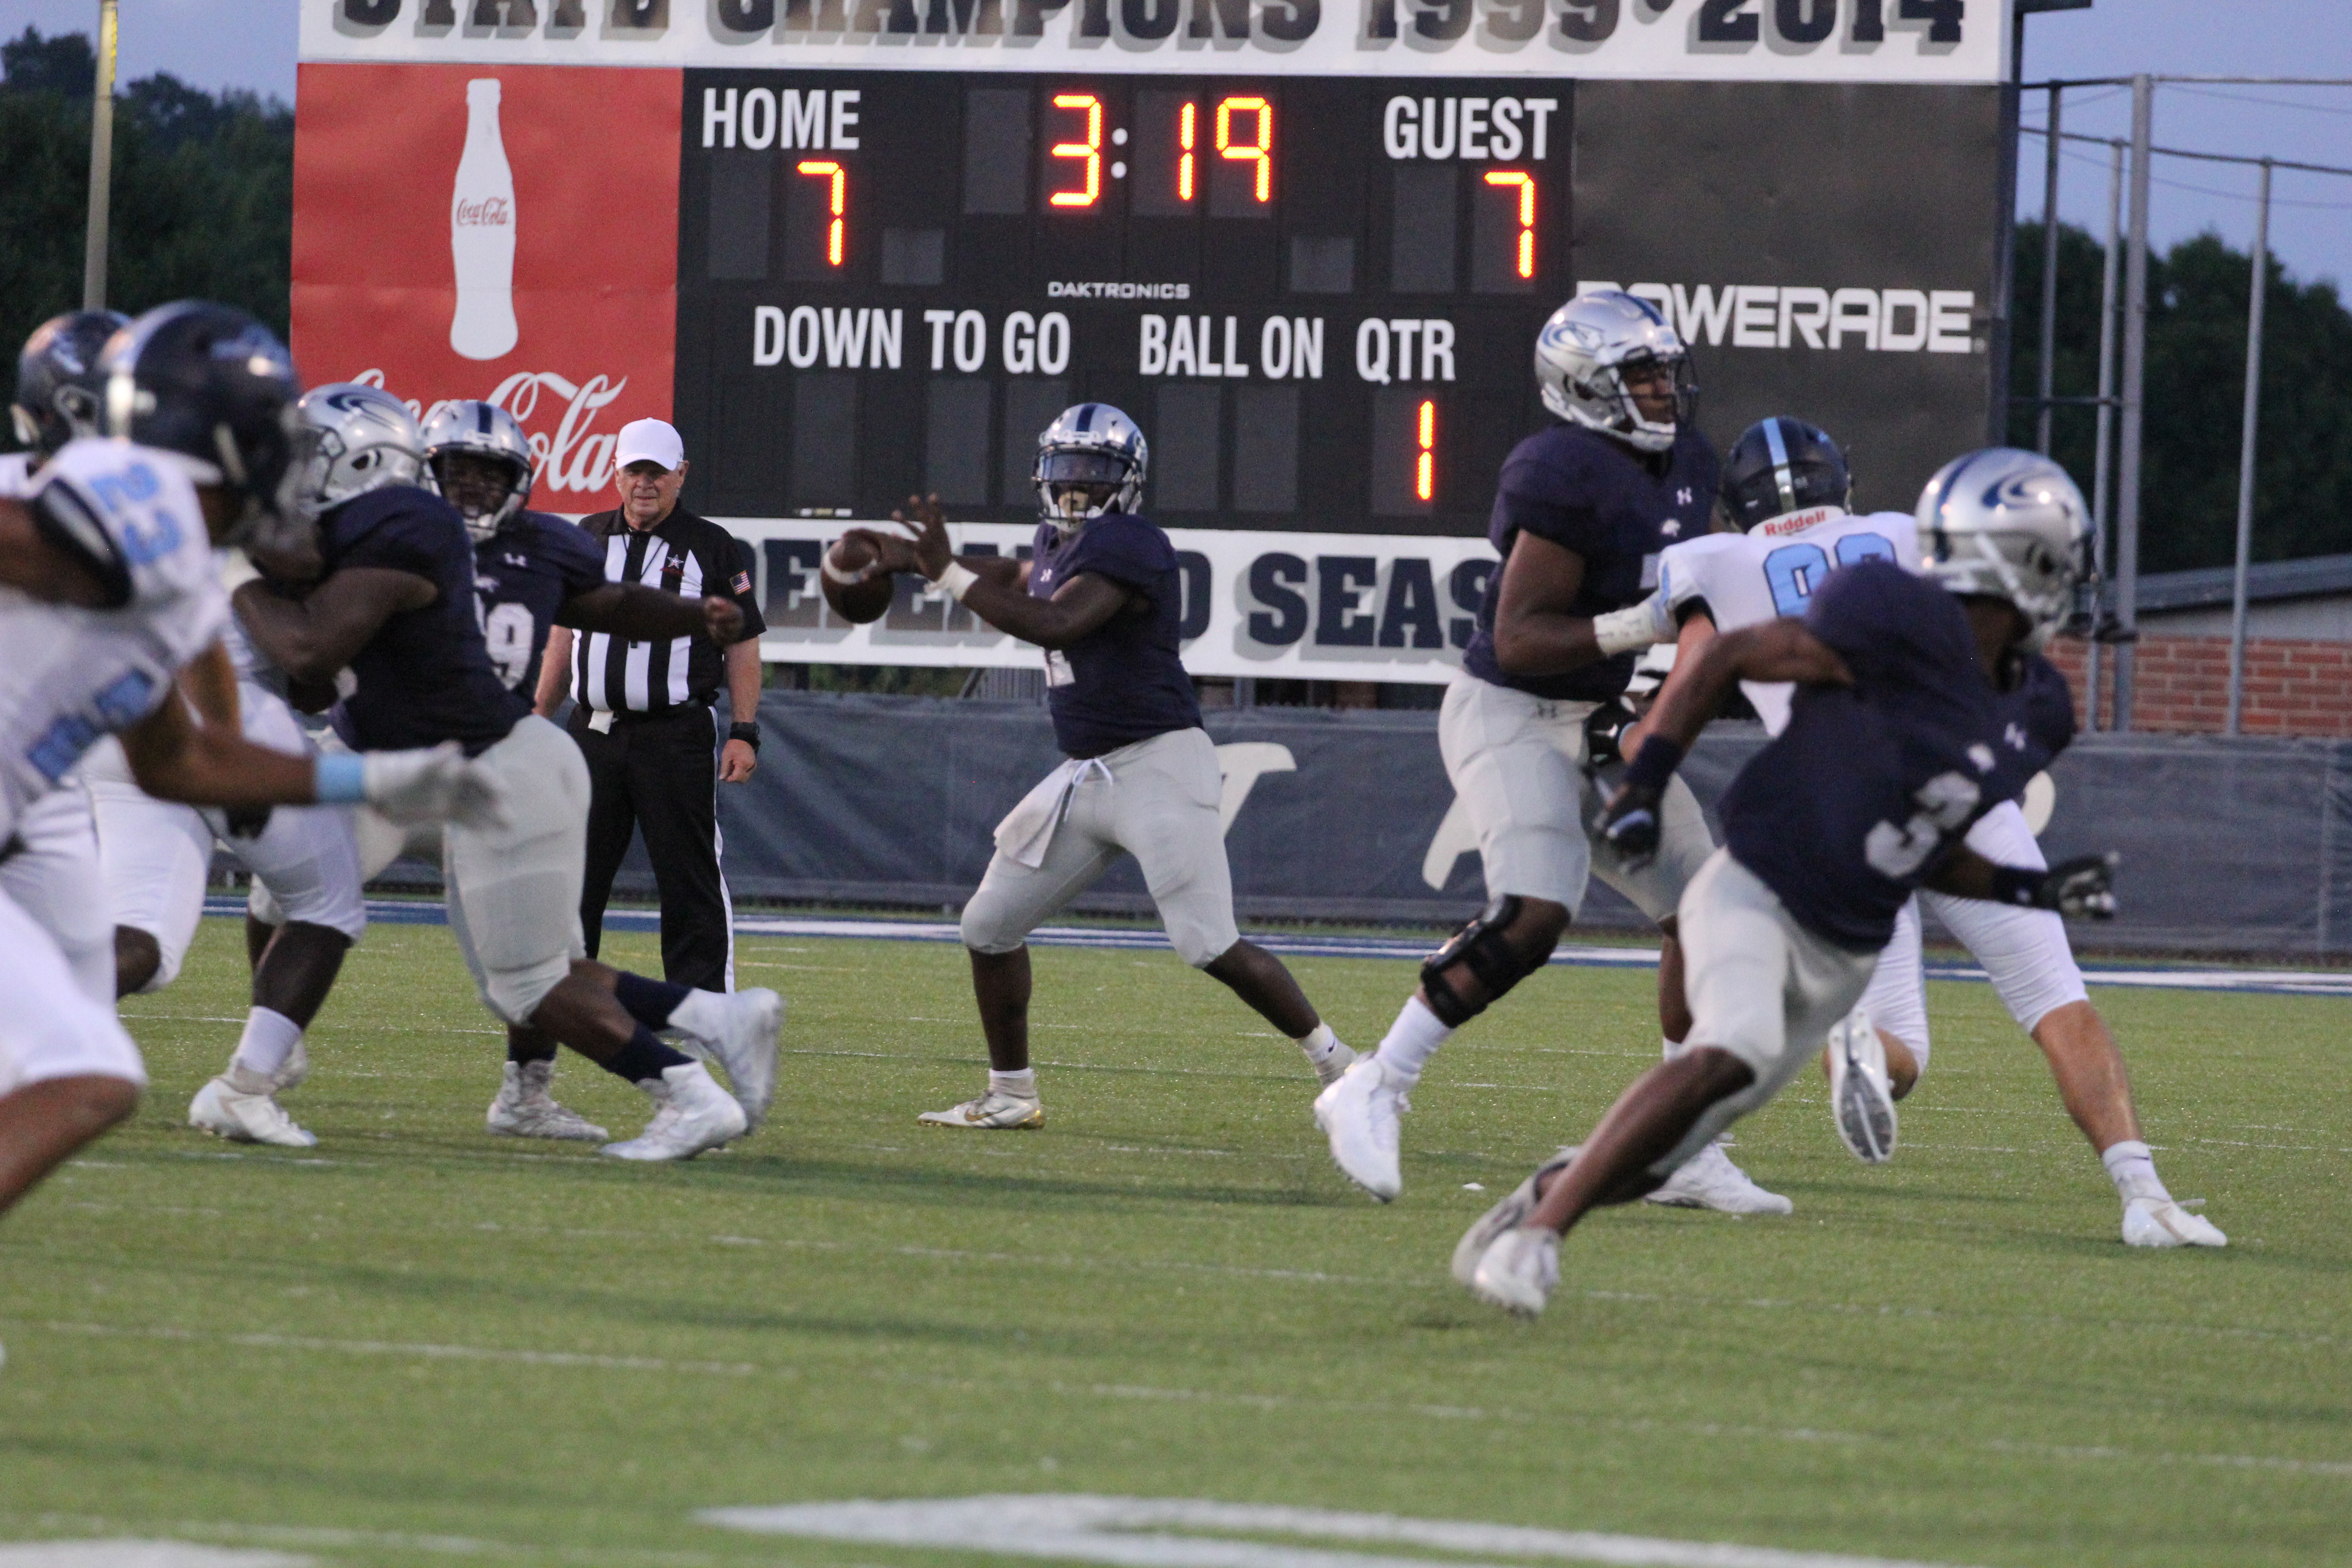 Clay-Chalkville stuns James Clemens with two touchdowns in final six minutes